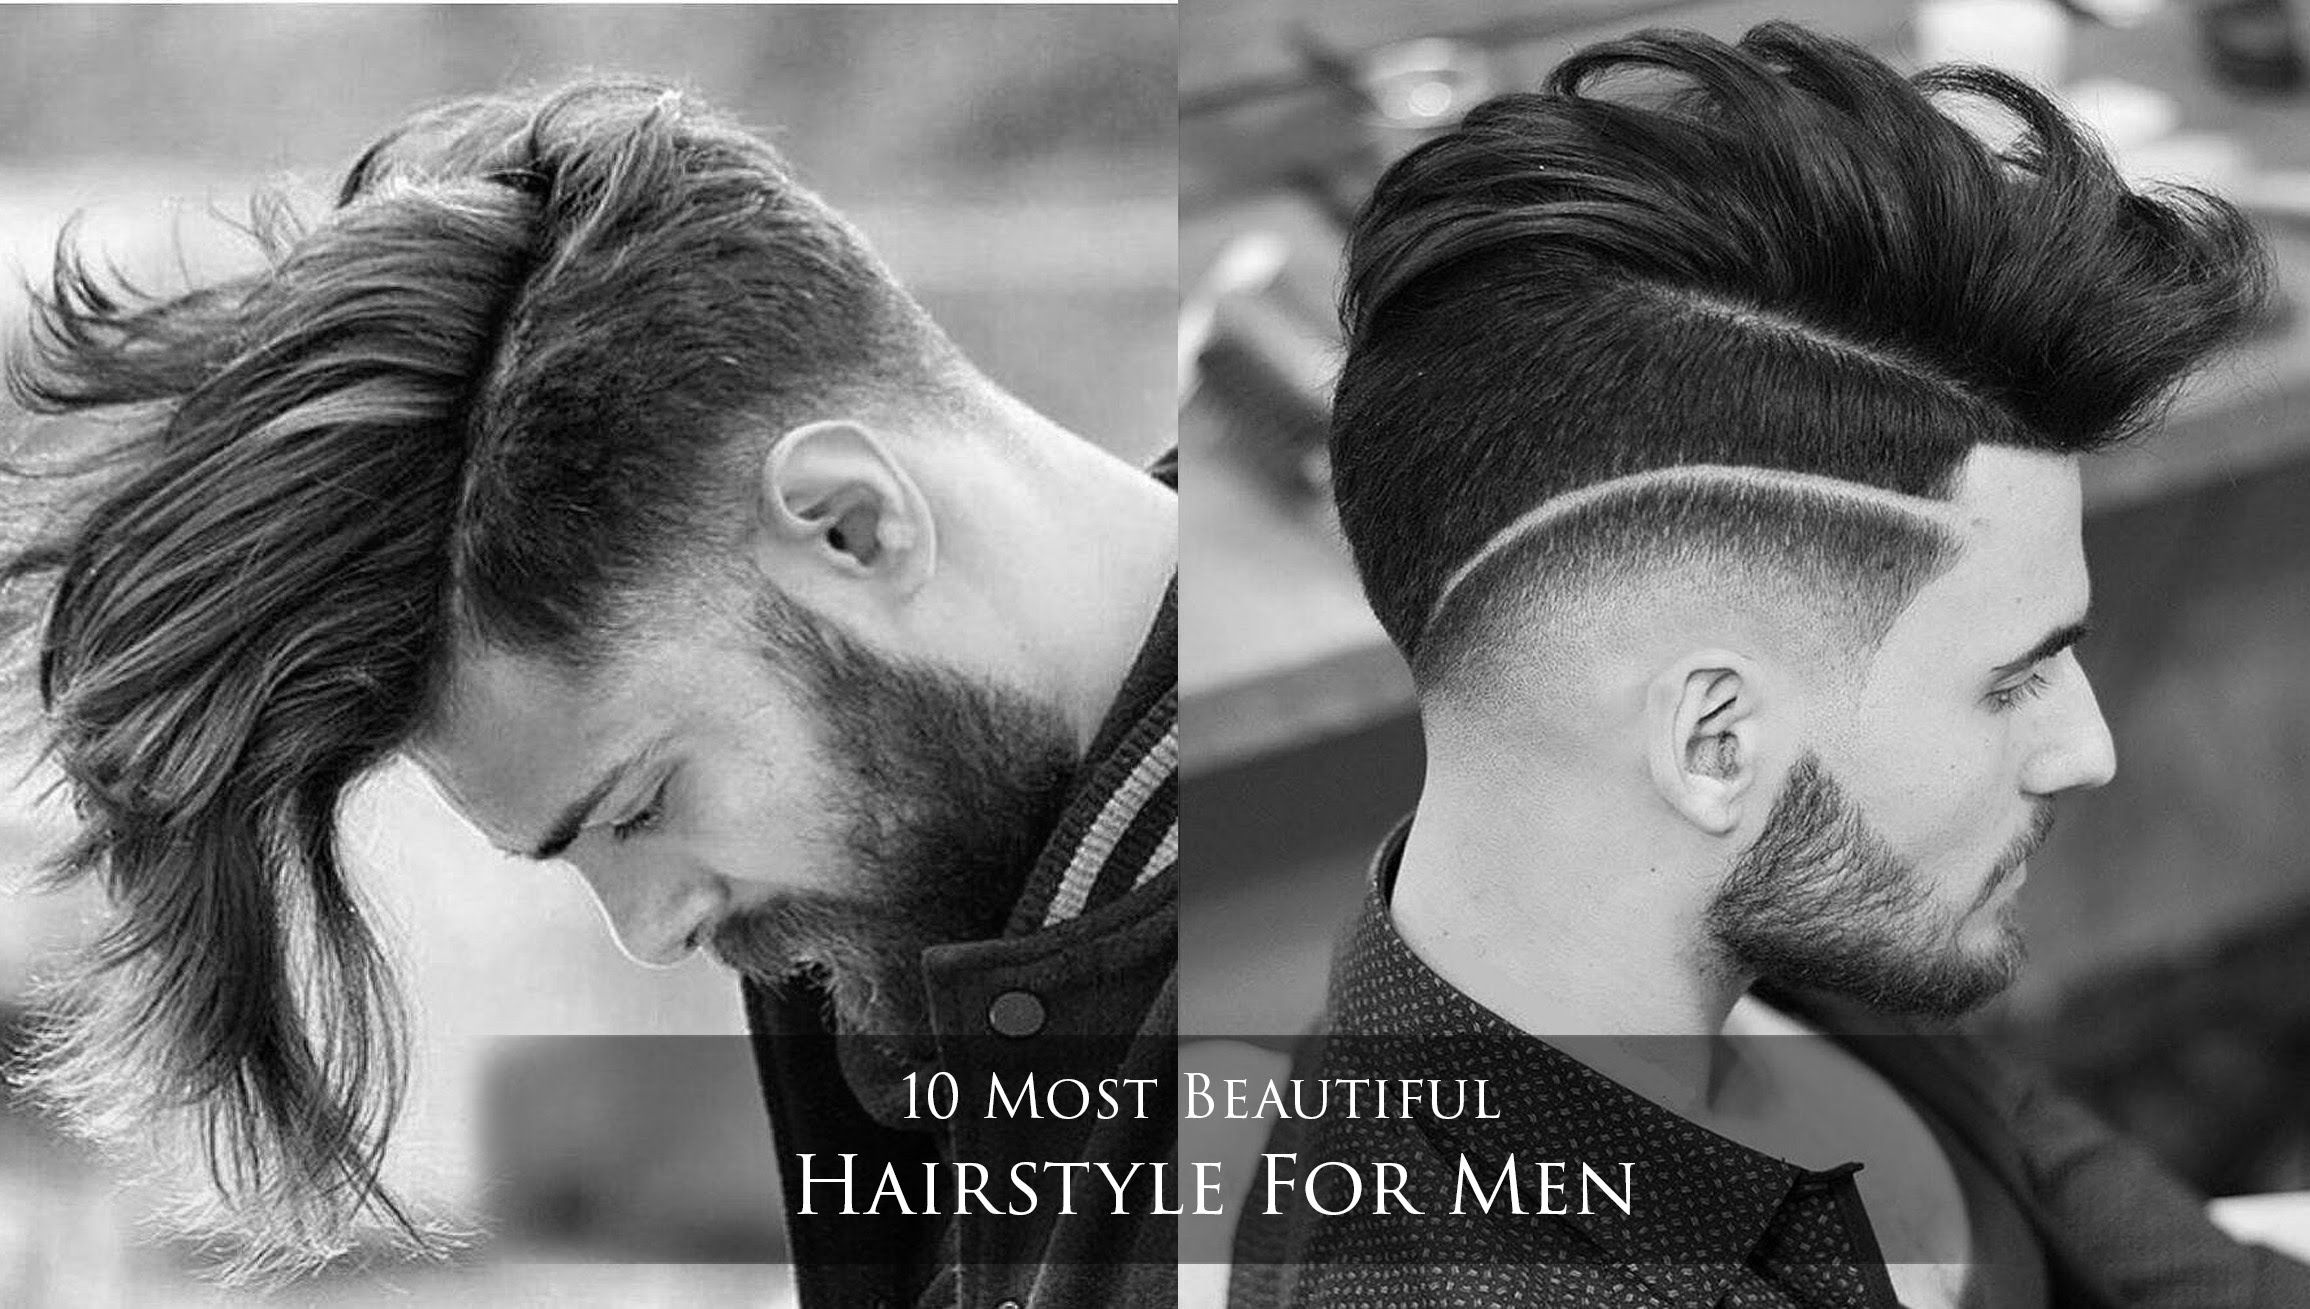 10 Most Beautiful Hairstyle For Men 2016 | Men Hairstyles ...